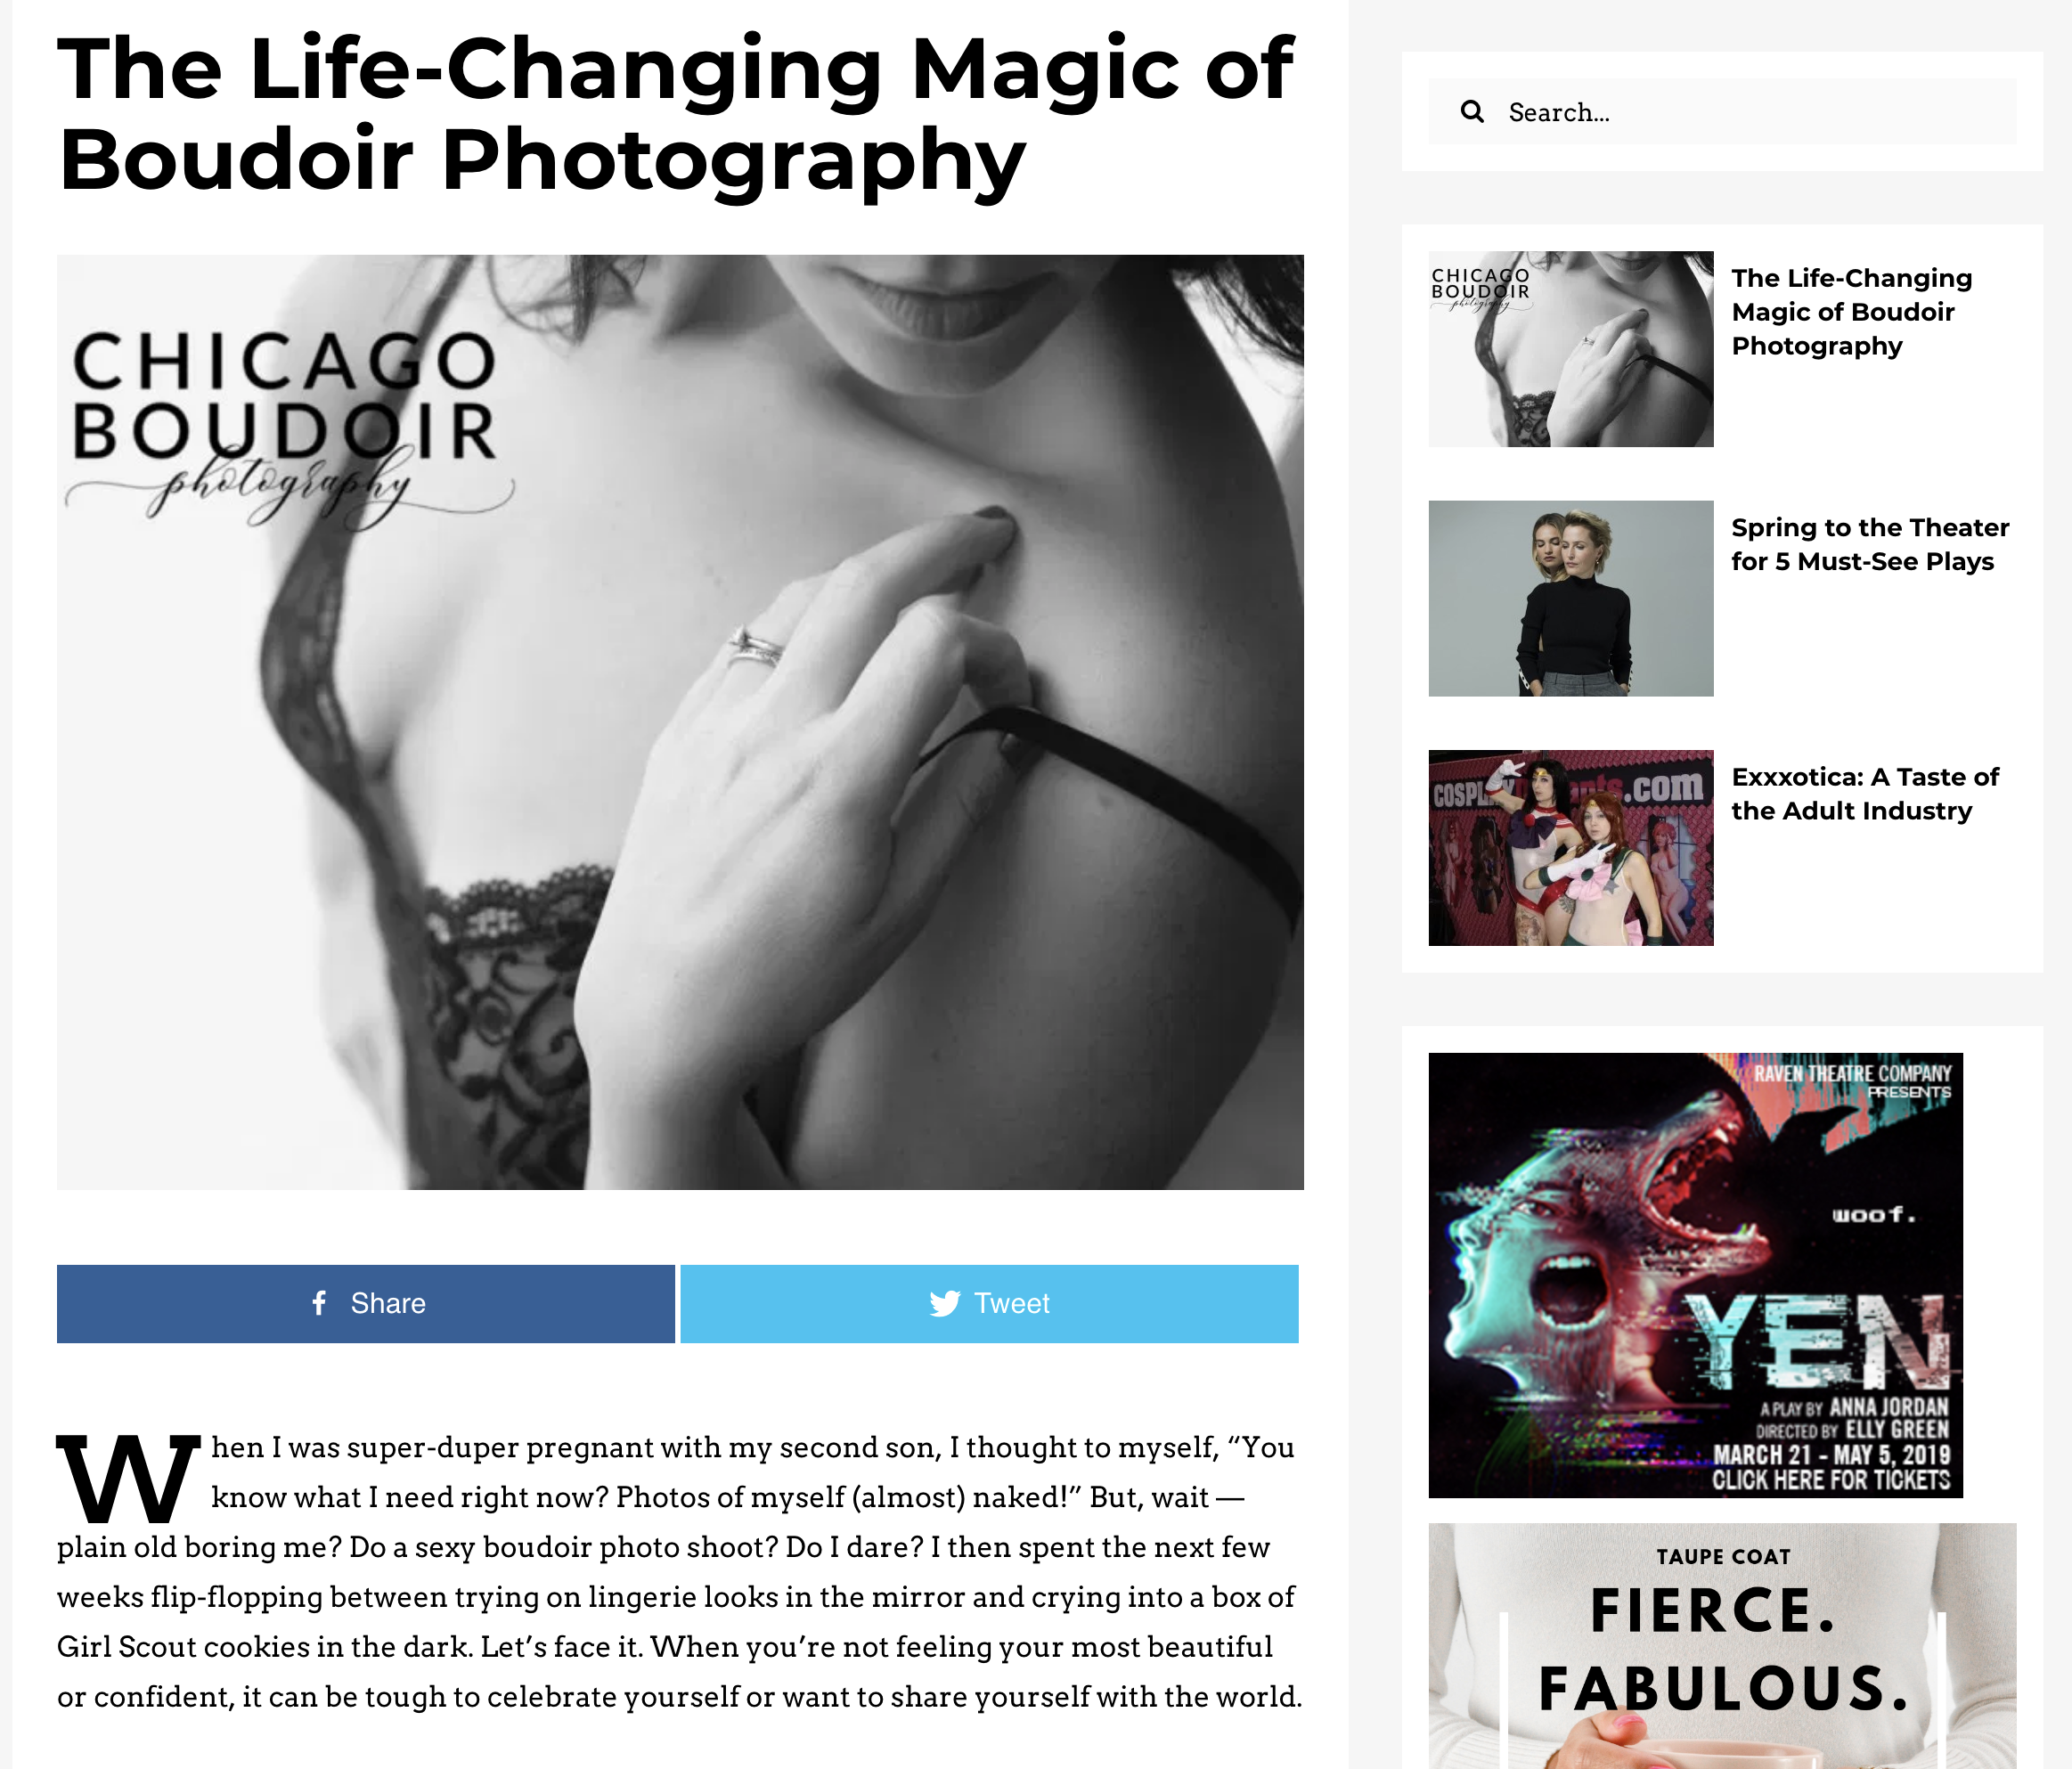 Chicago-Boudoir-Photography-Life-Changing-Magic-of-Boudoir